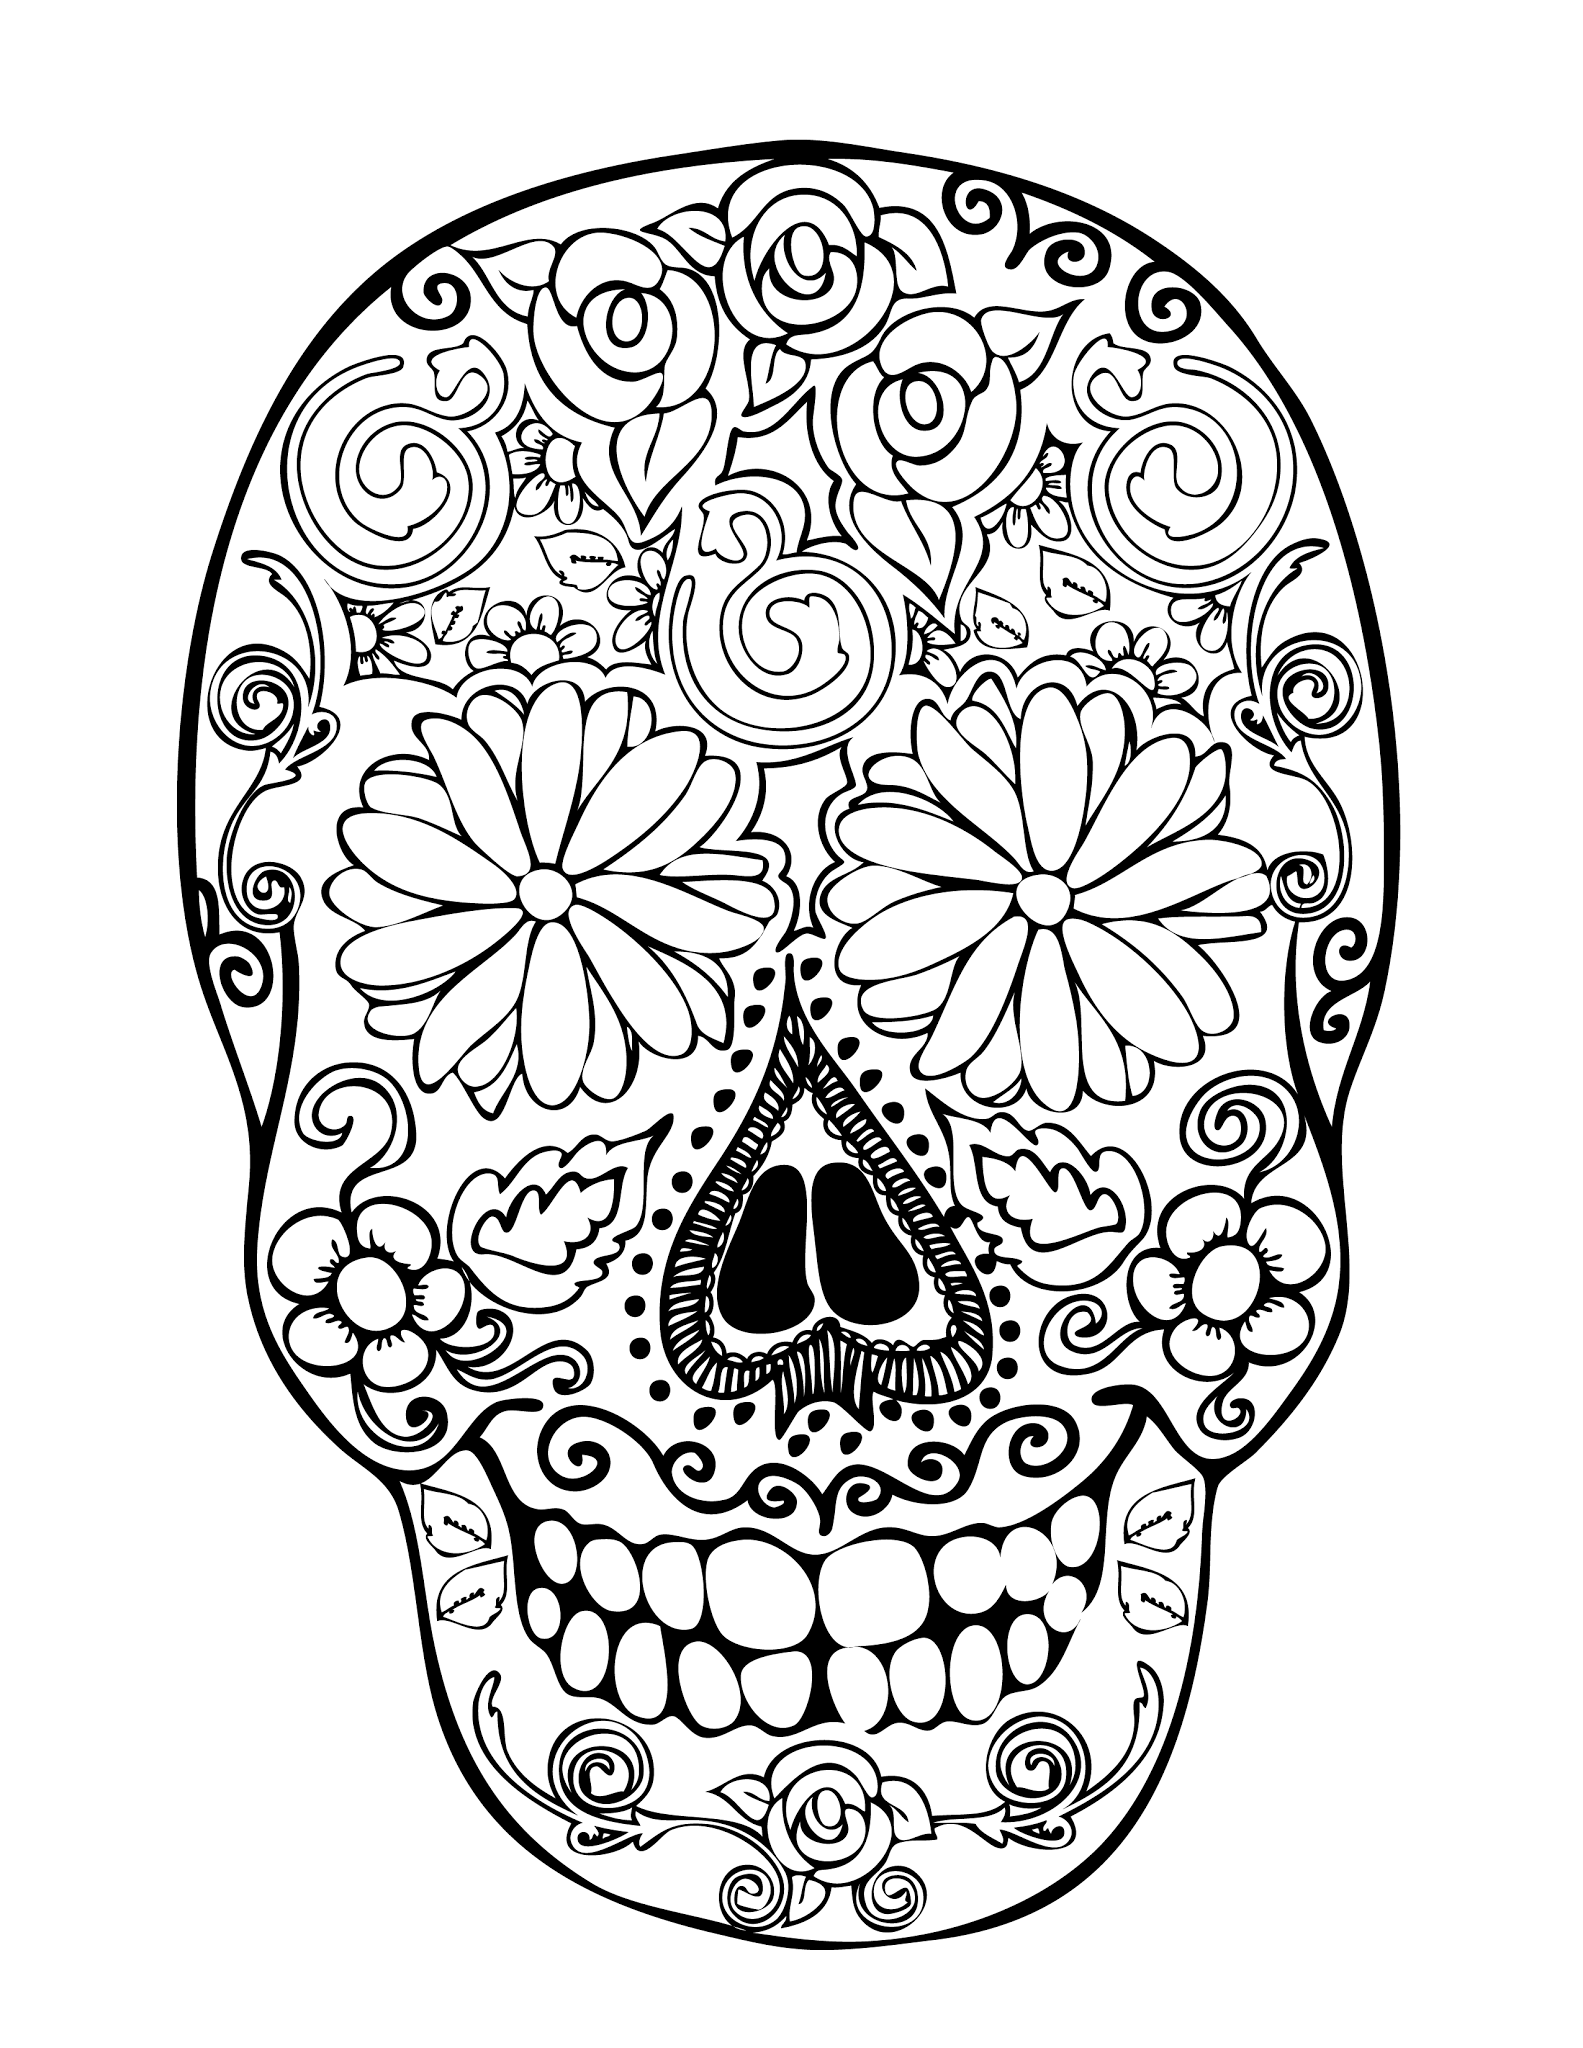 dia de los muertos coloring pages printable - 28 skull coloring pages for kids print color craft